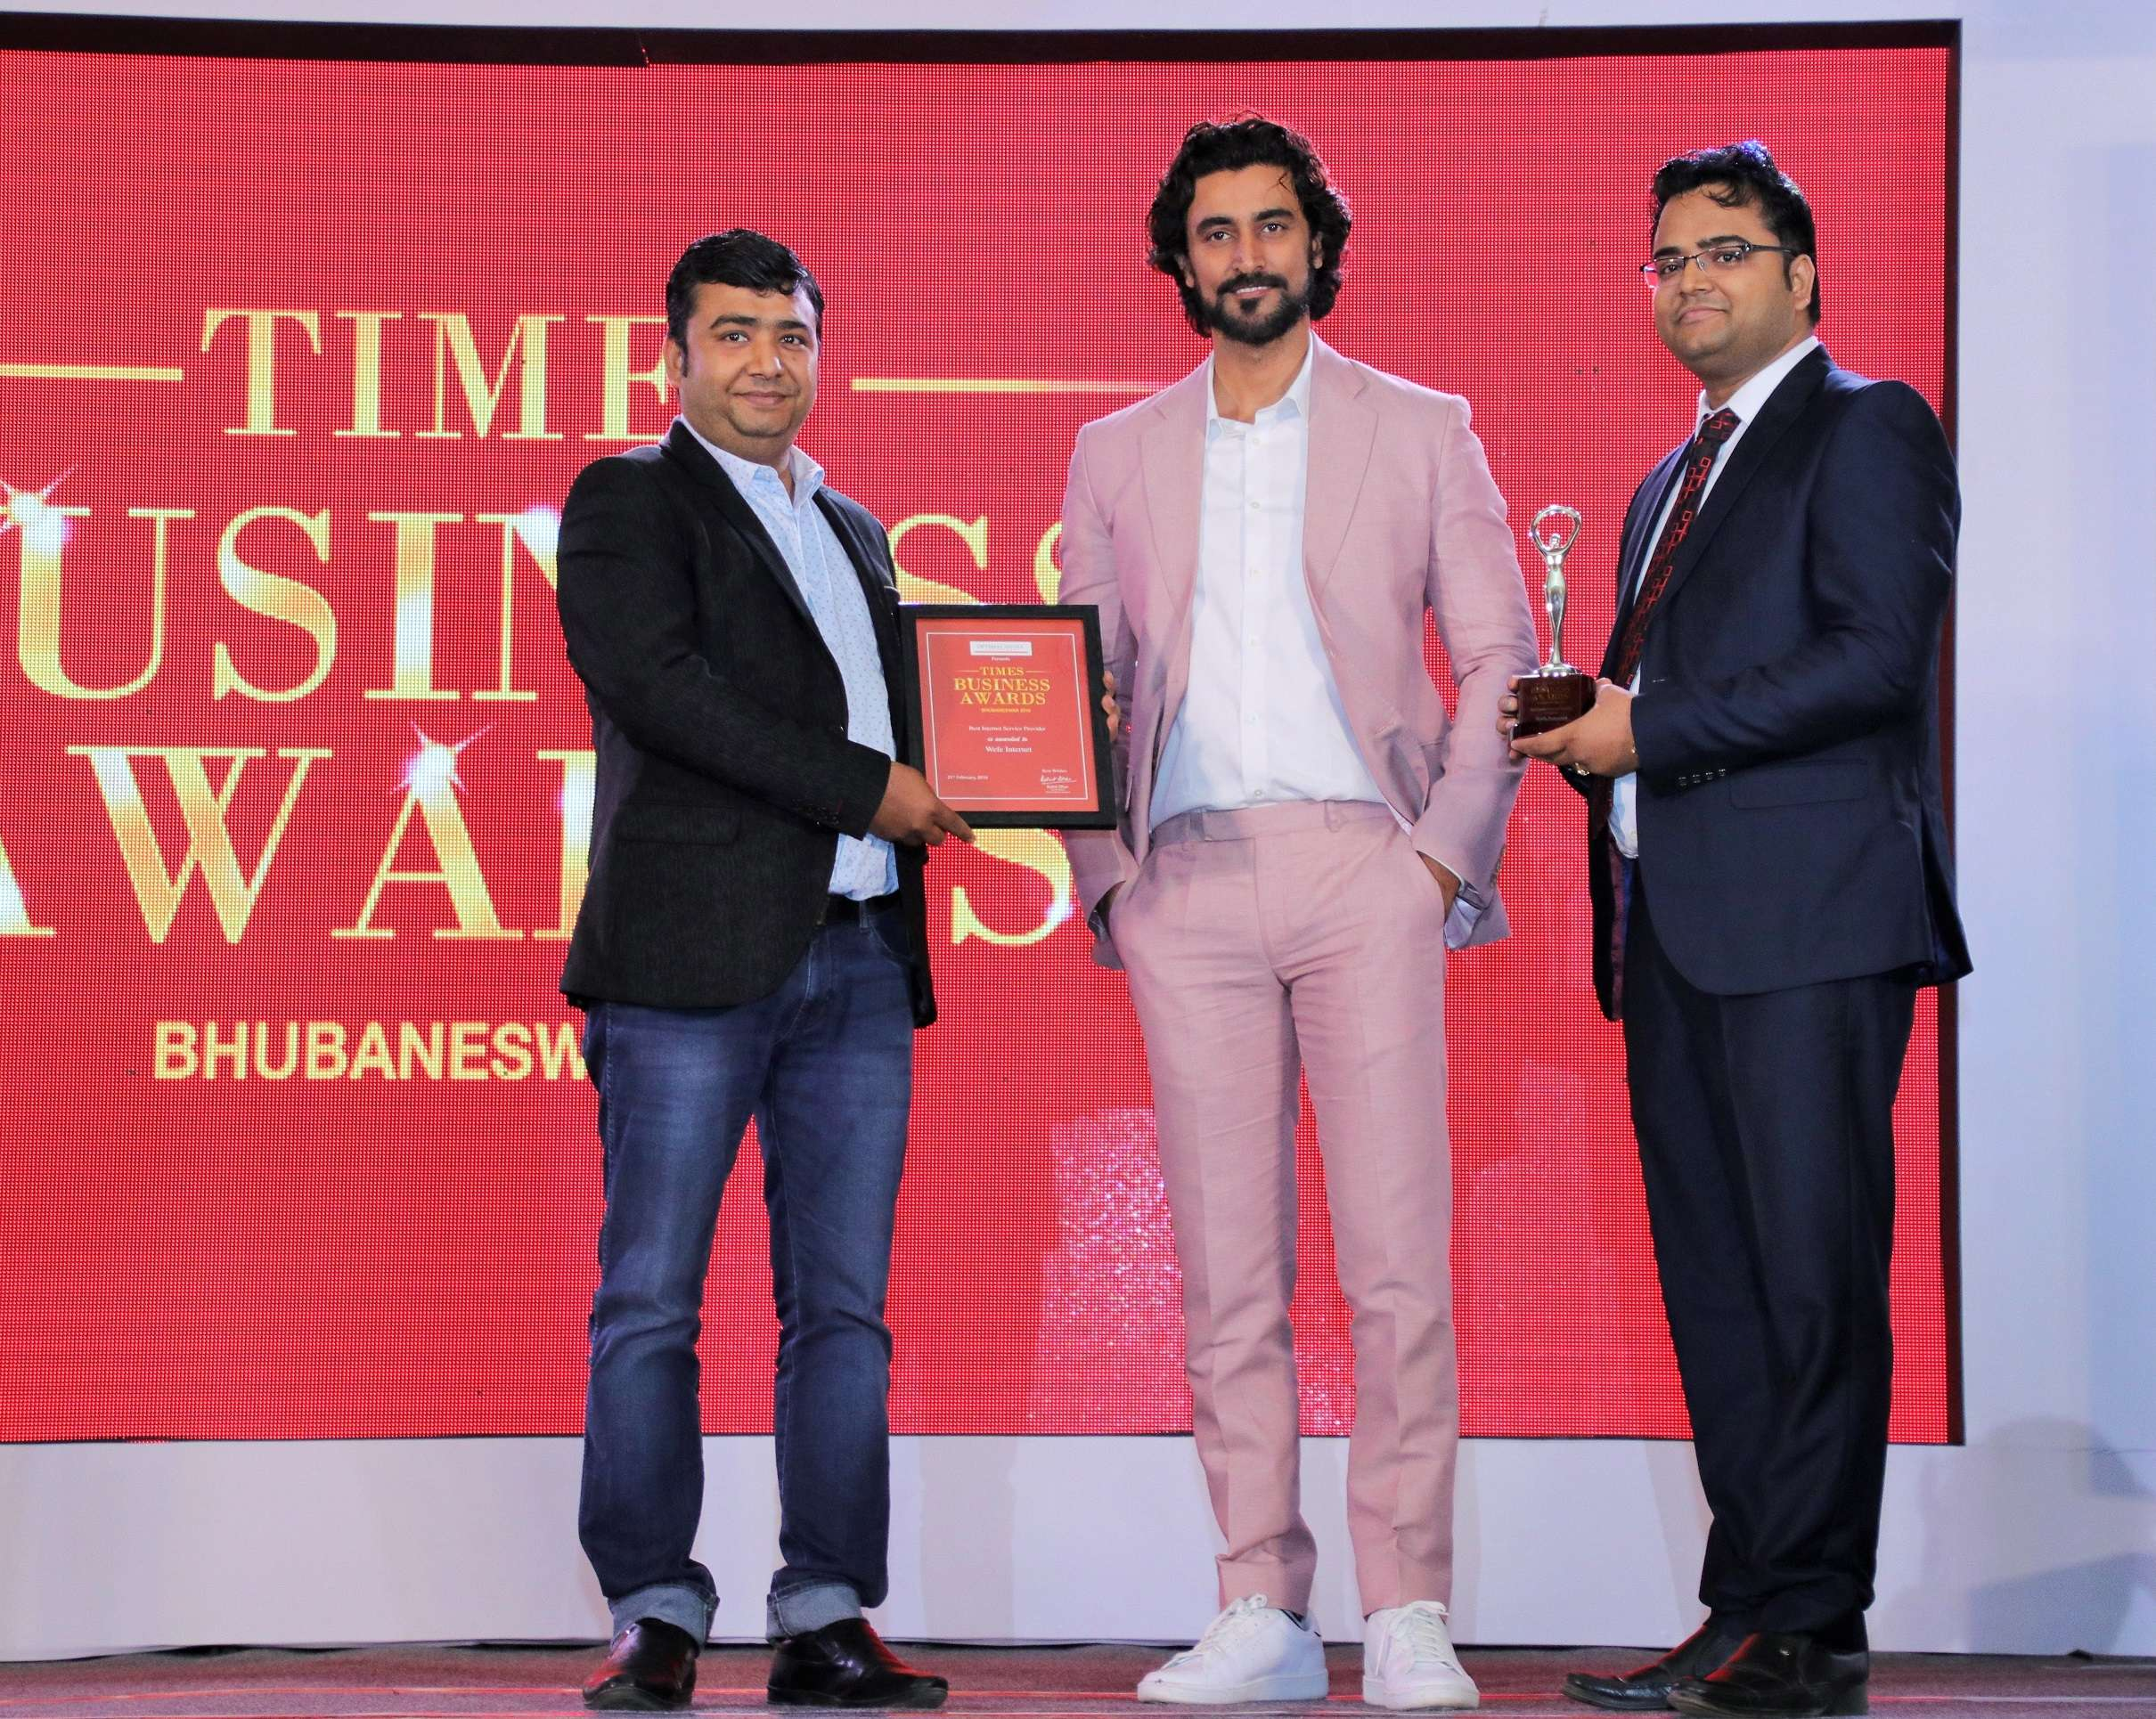 Nitin Agrawal (L) , MD, Prashant Agrawal (R), Director of Wefe Internet recieving award from Kunal Kapoor